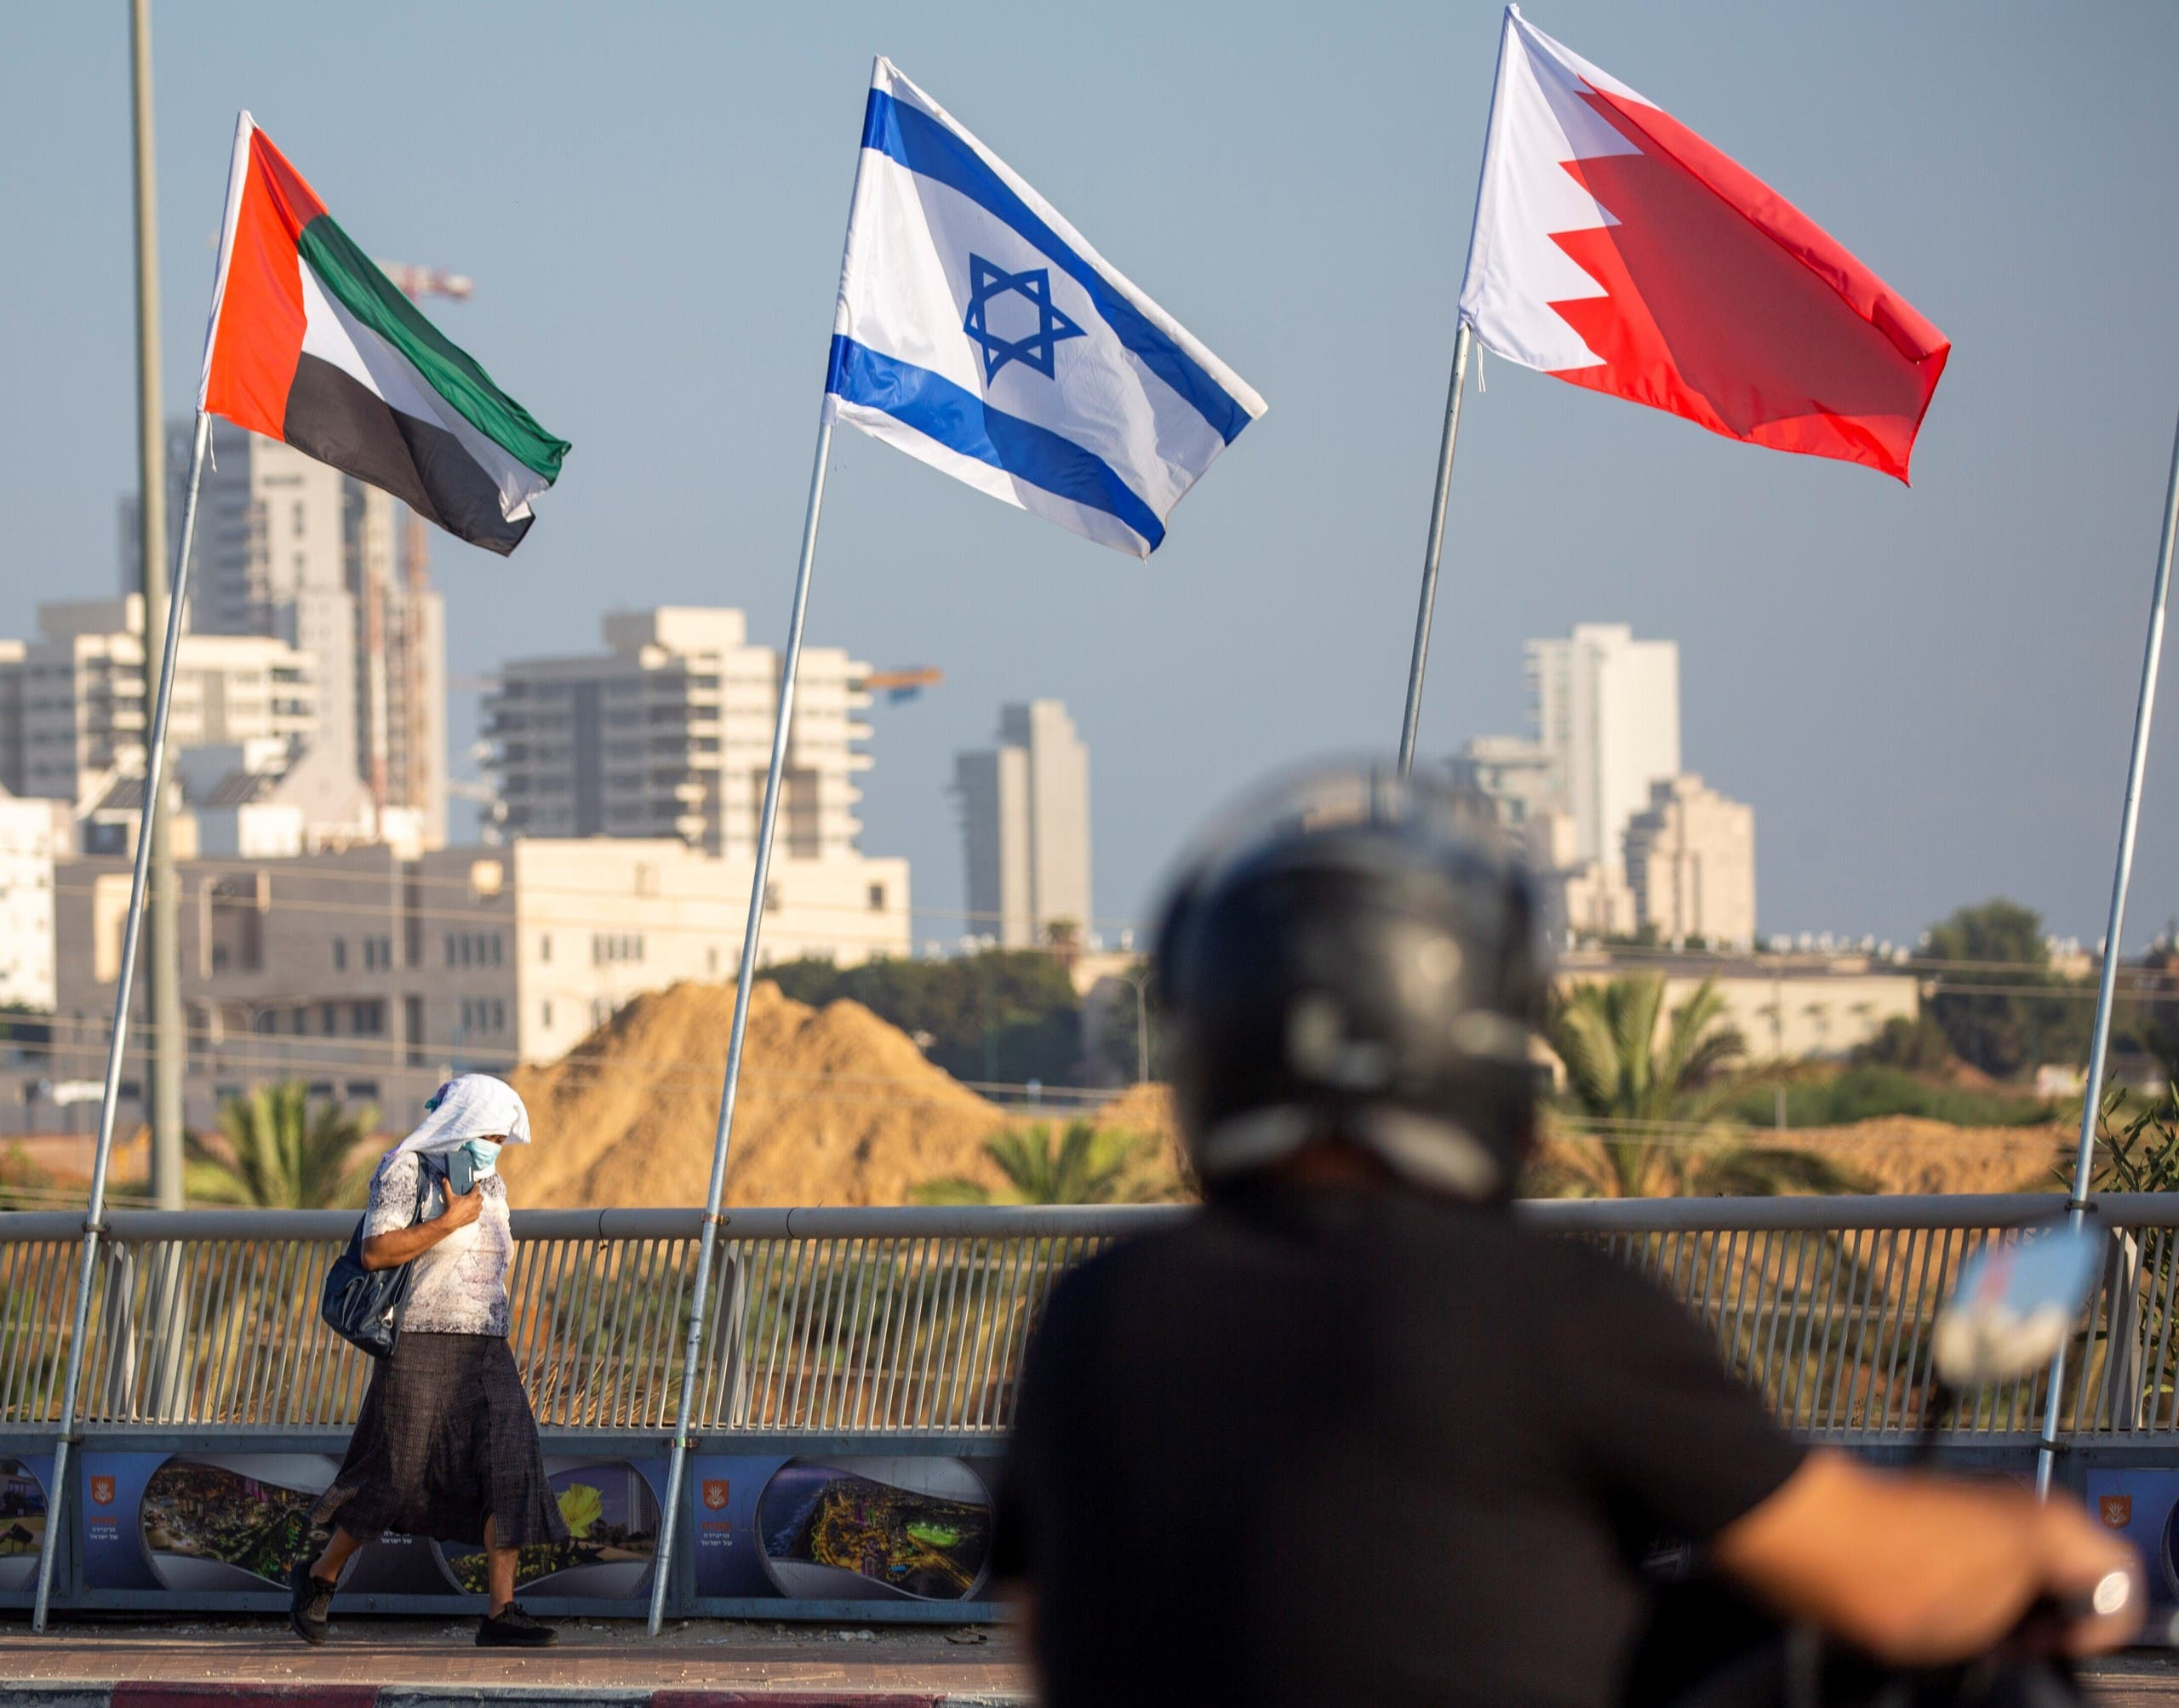 A woman wearing a face mask against the coronavirus pandemic walks past United Arab Emirates, Israel and Bahraini flags in Netanya, Israel on Sept. 14, 2020. (AP)